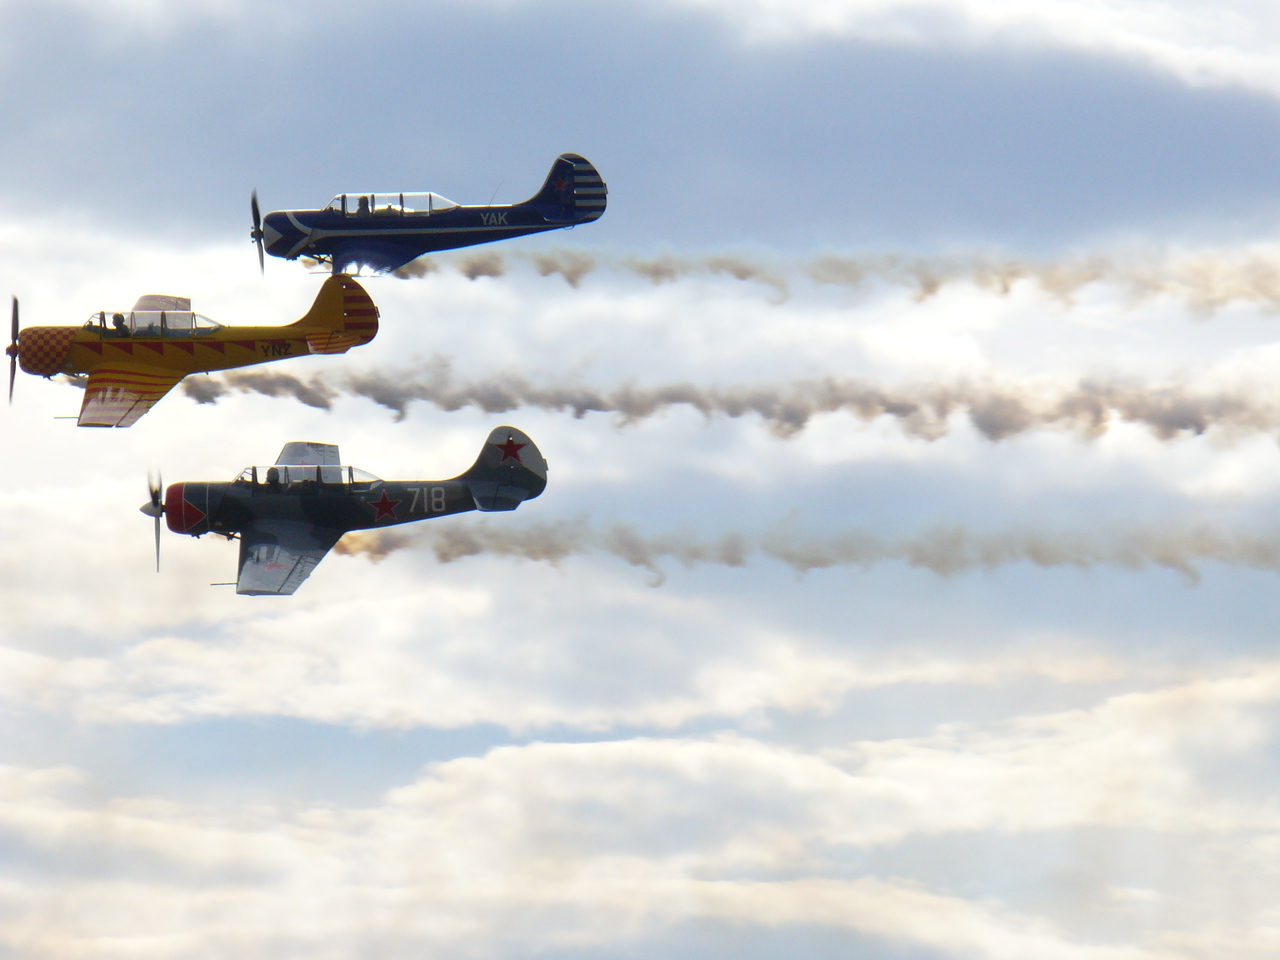 Nanchang CJ-6's at Warbirds over Wanaka